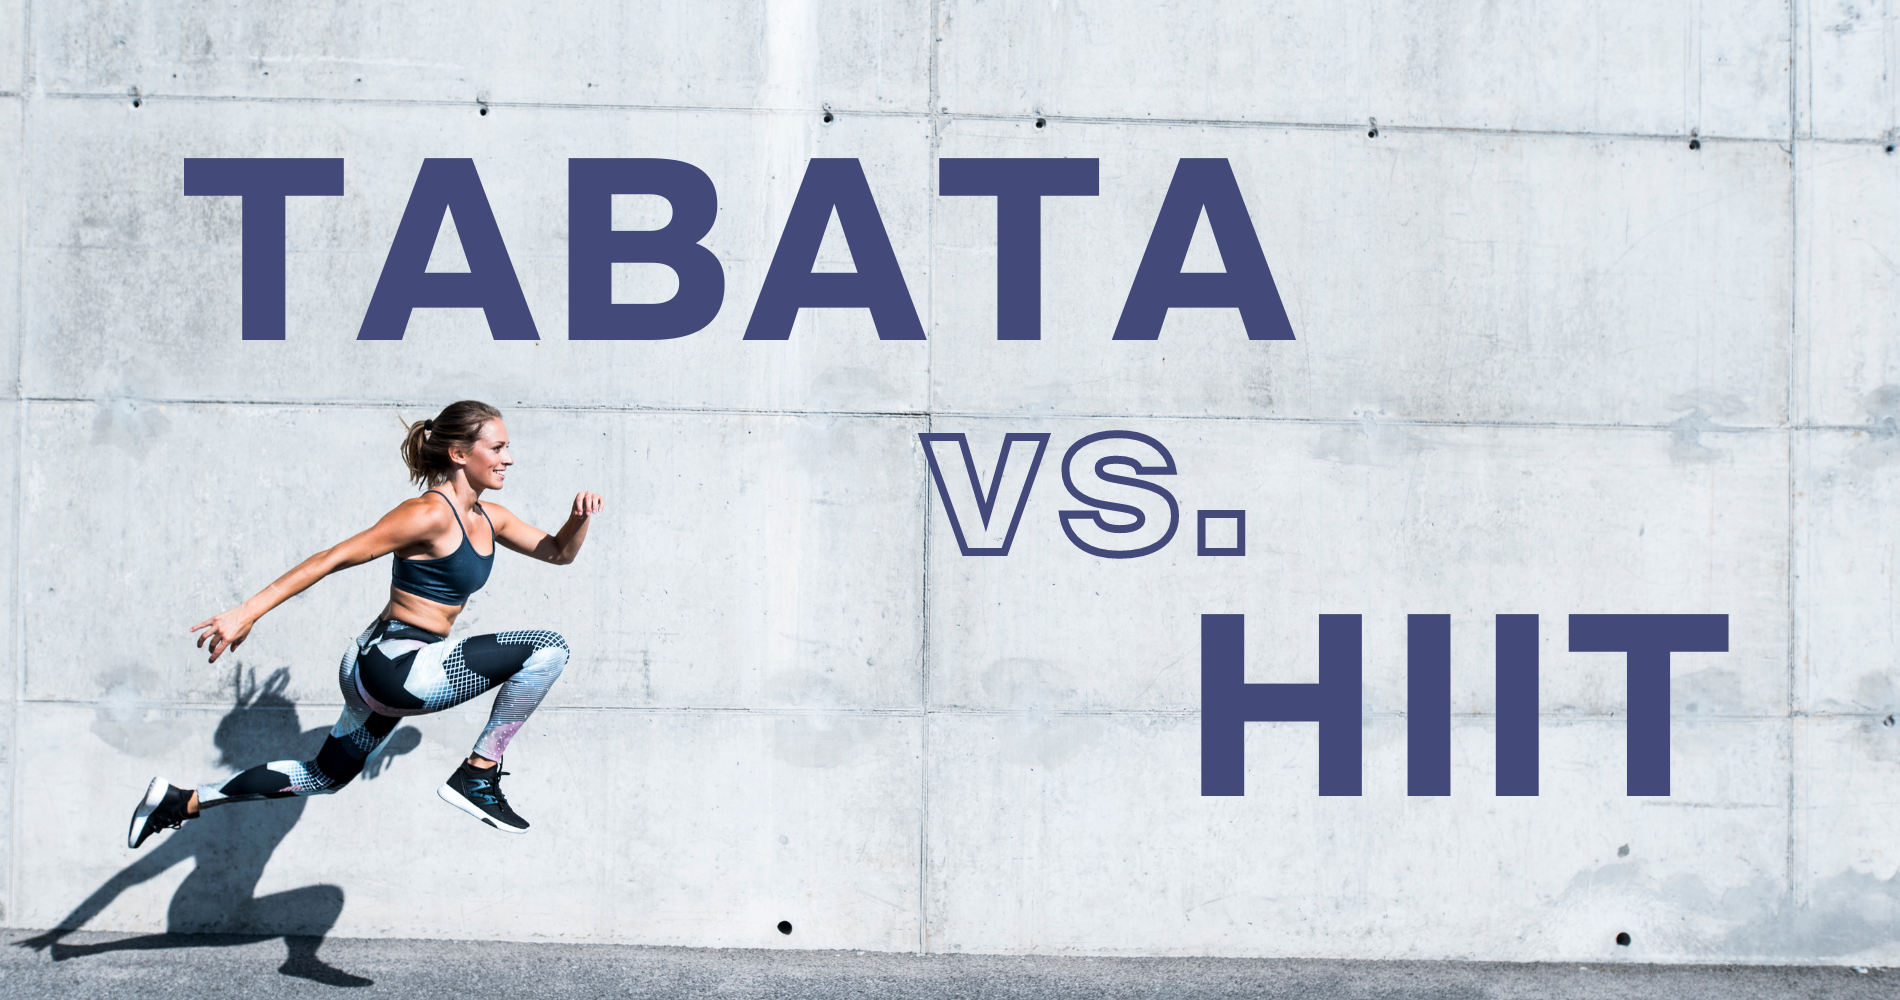 TABATA VS HIIT_ The pros and cons of both